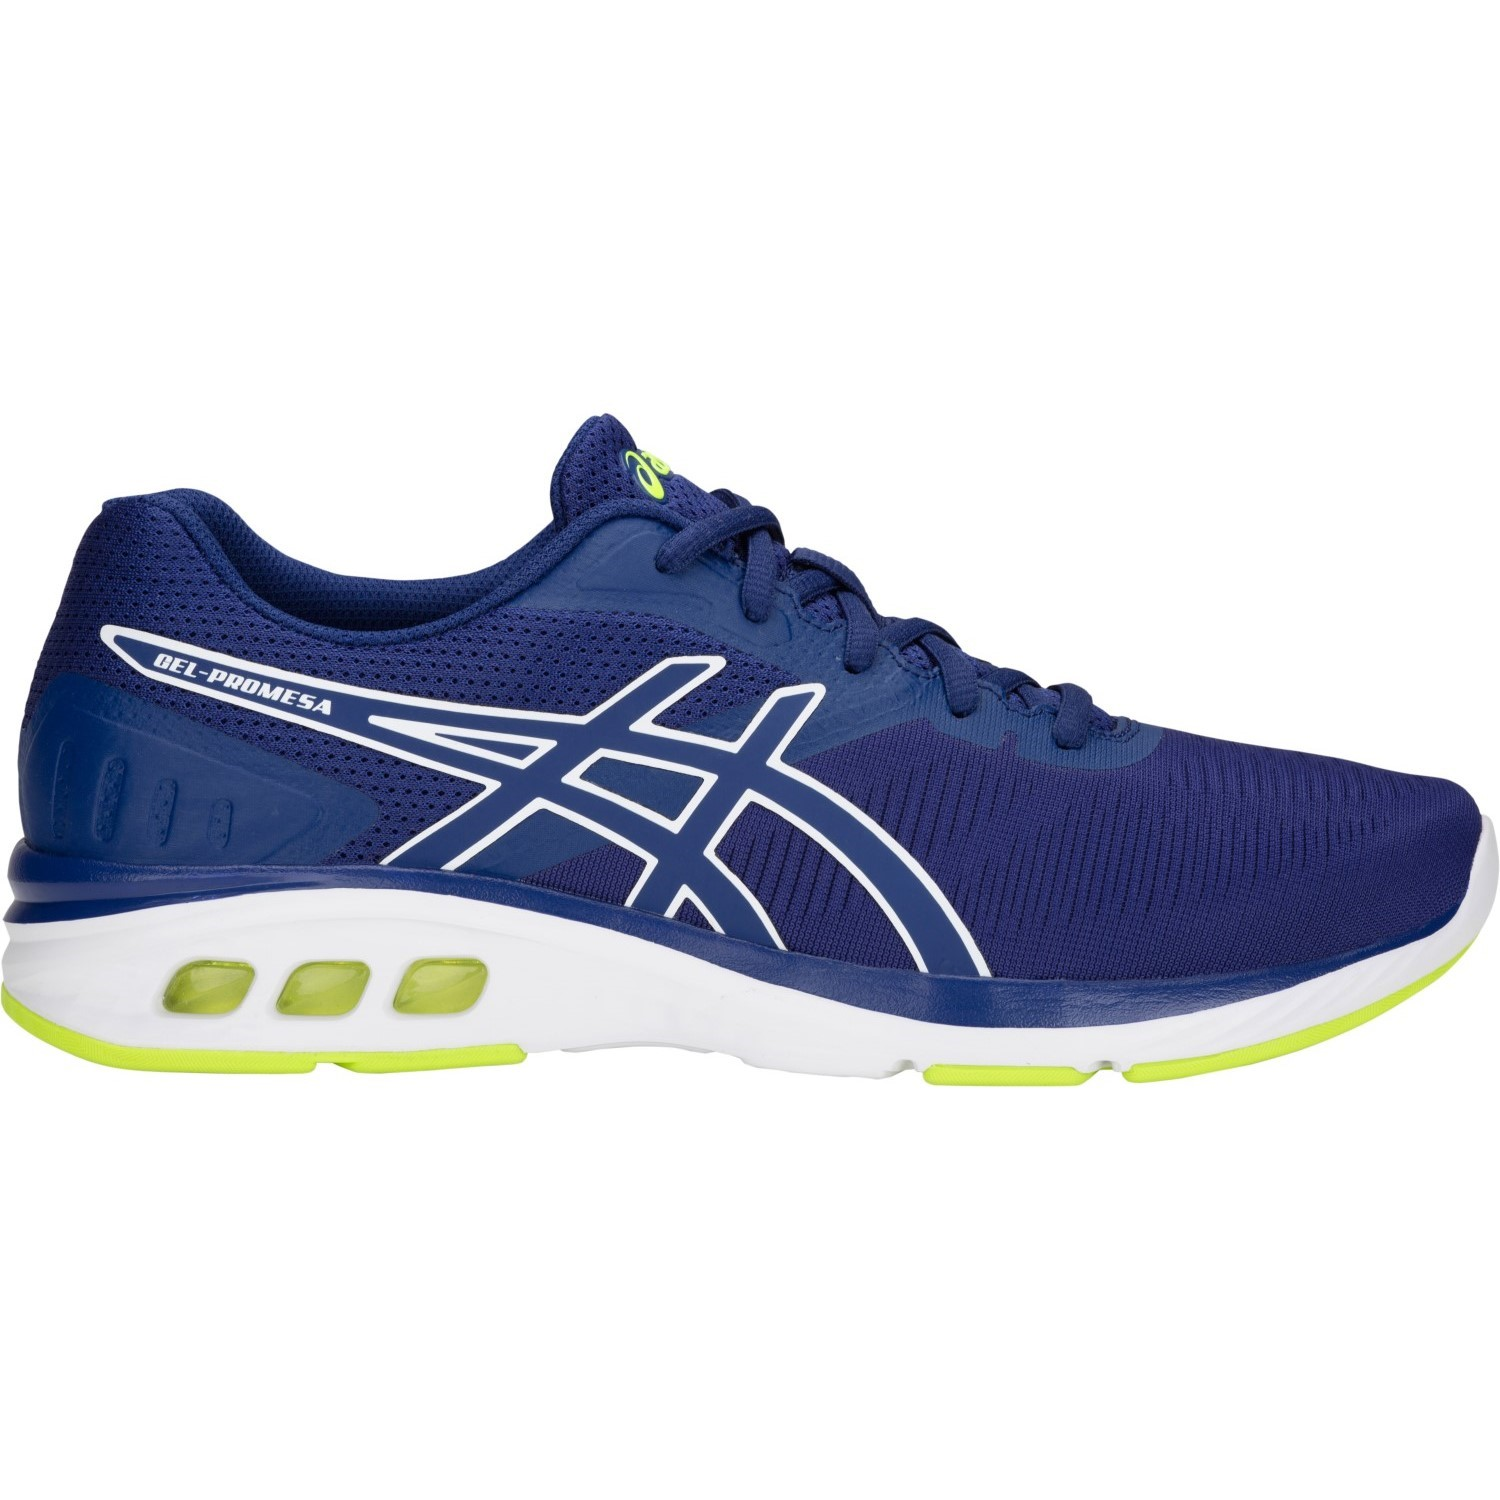 tsunami con las manos en la masa Destino  Asics Gel Promesa - Mens Running Shoes - Blue Print/White | Sportitude